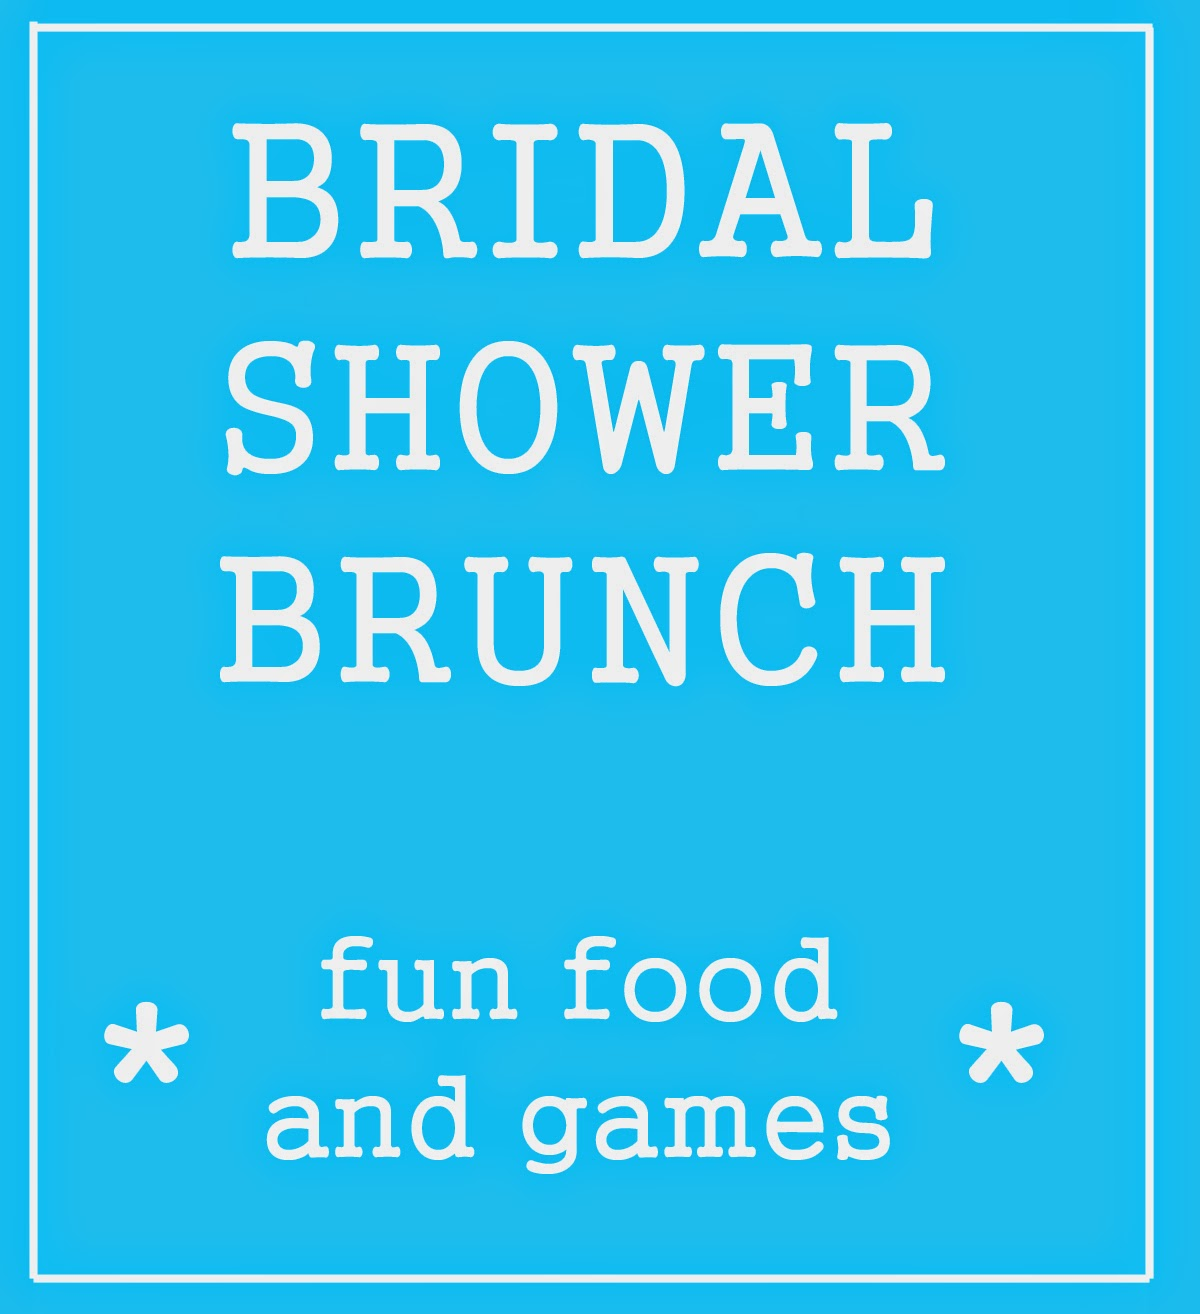 bridal shower brunch food and games